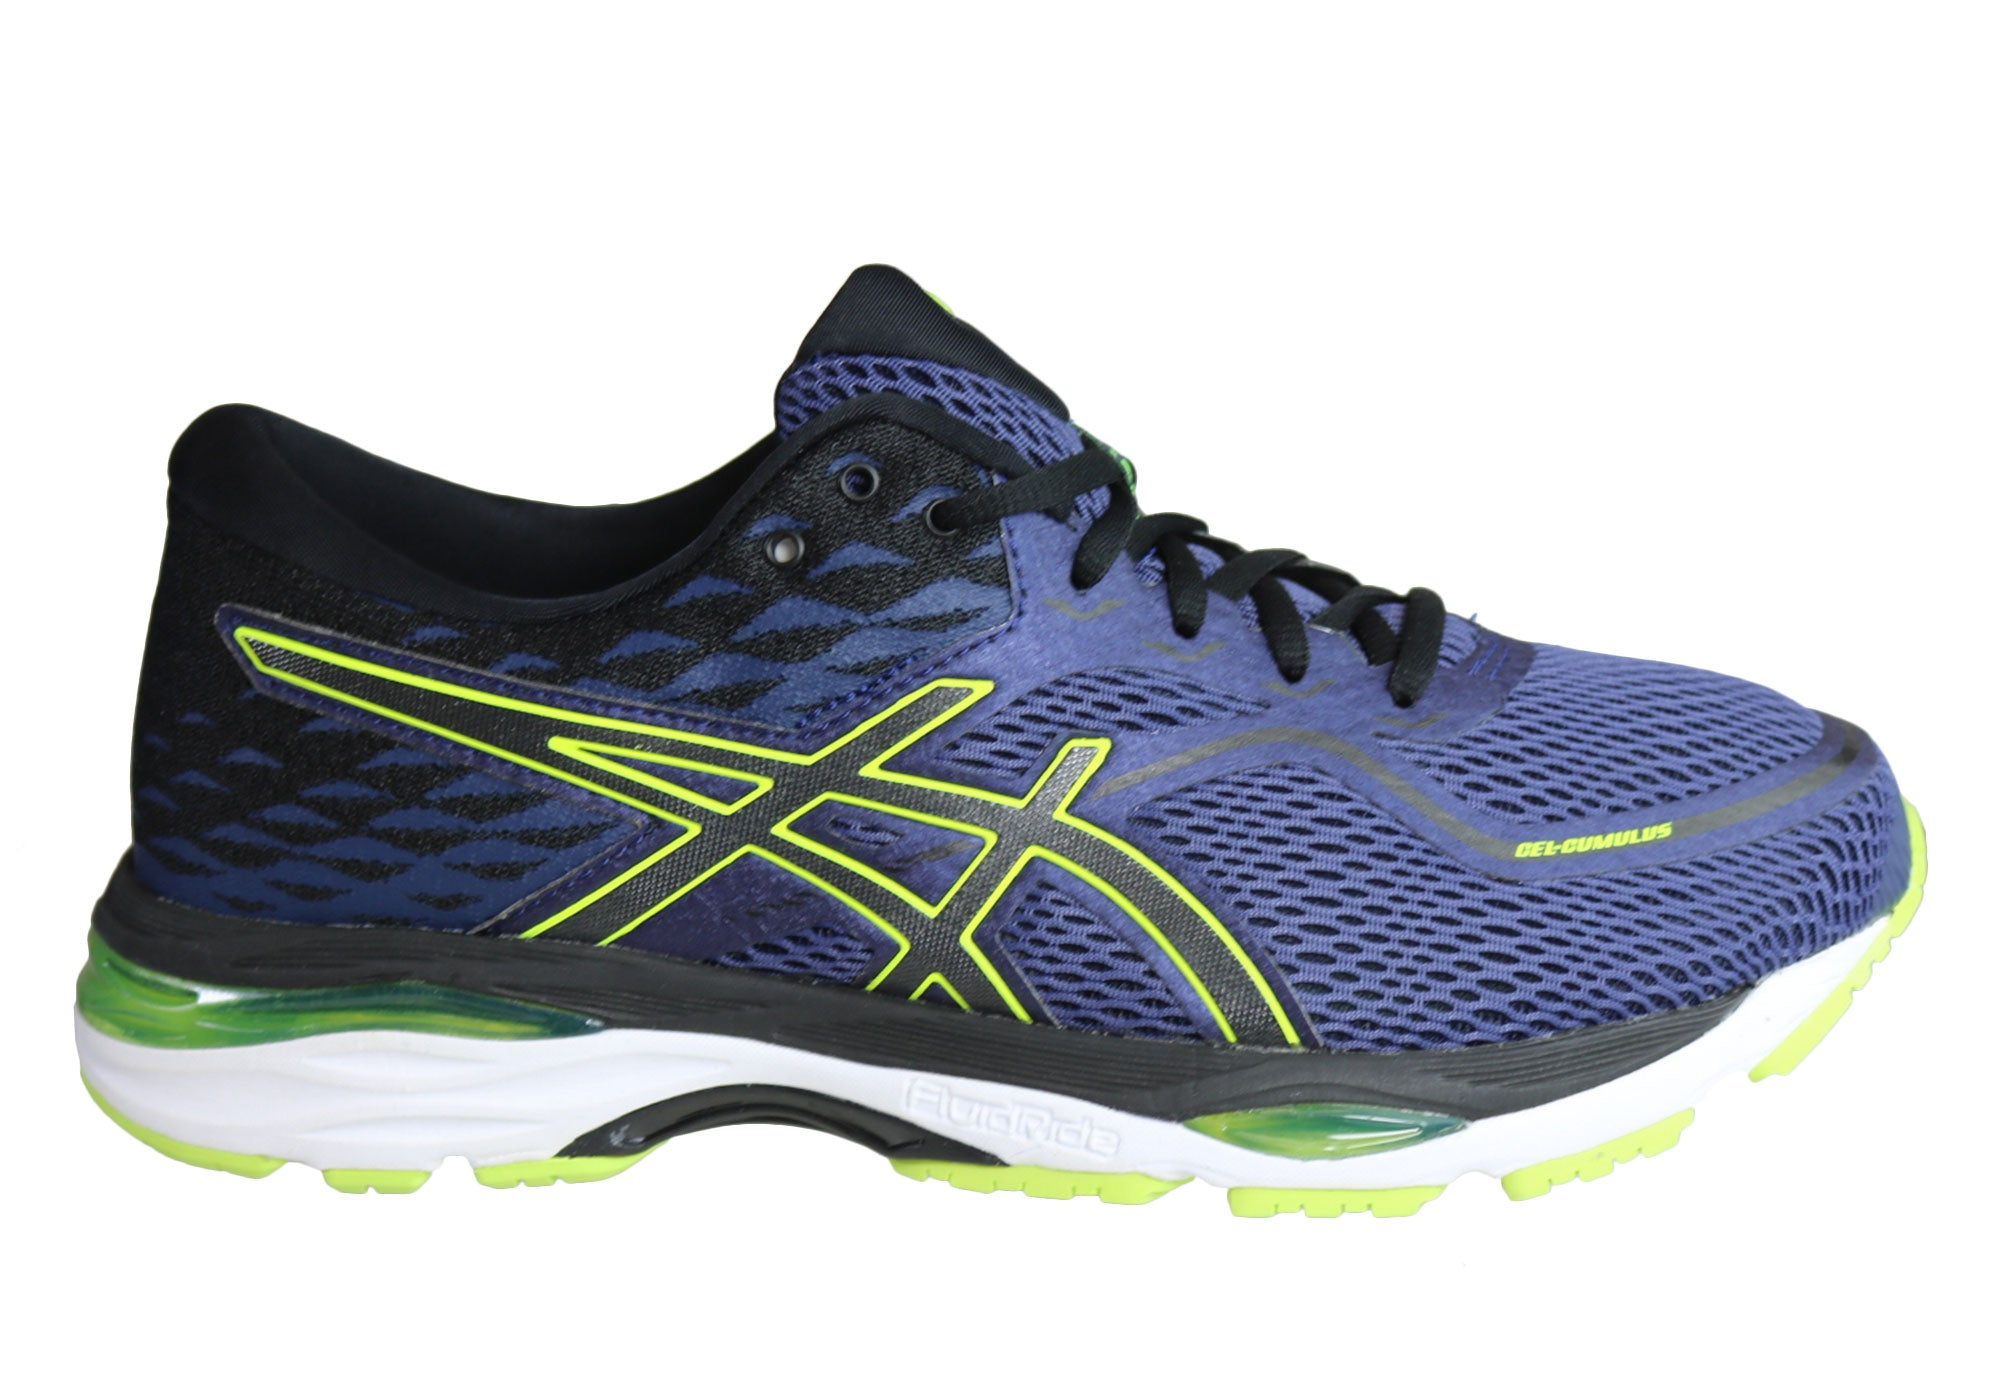 aa252cb3fedbc9 Asics Gel-Cumulus 19 Mens Premium Cushioned Running Sport Shoes ...